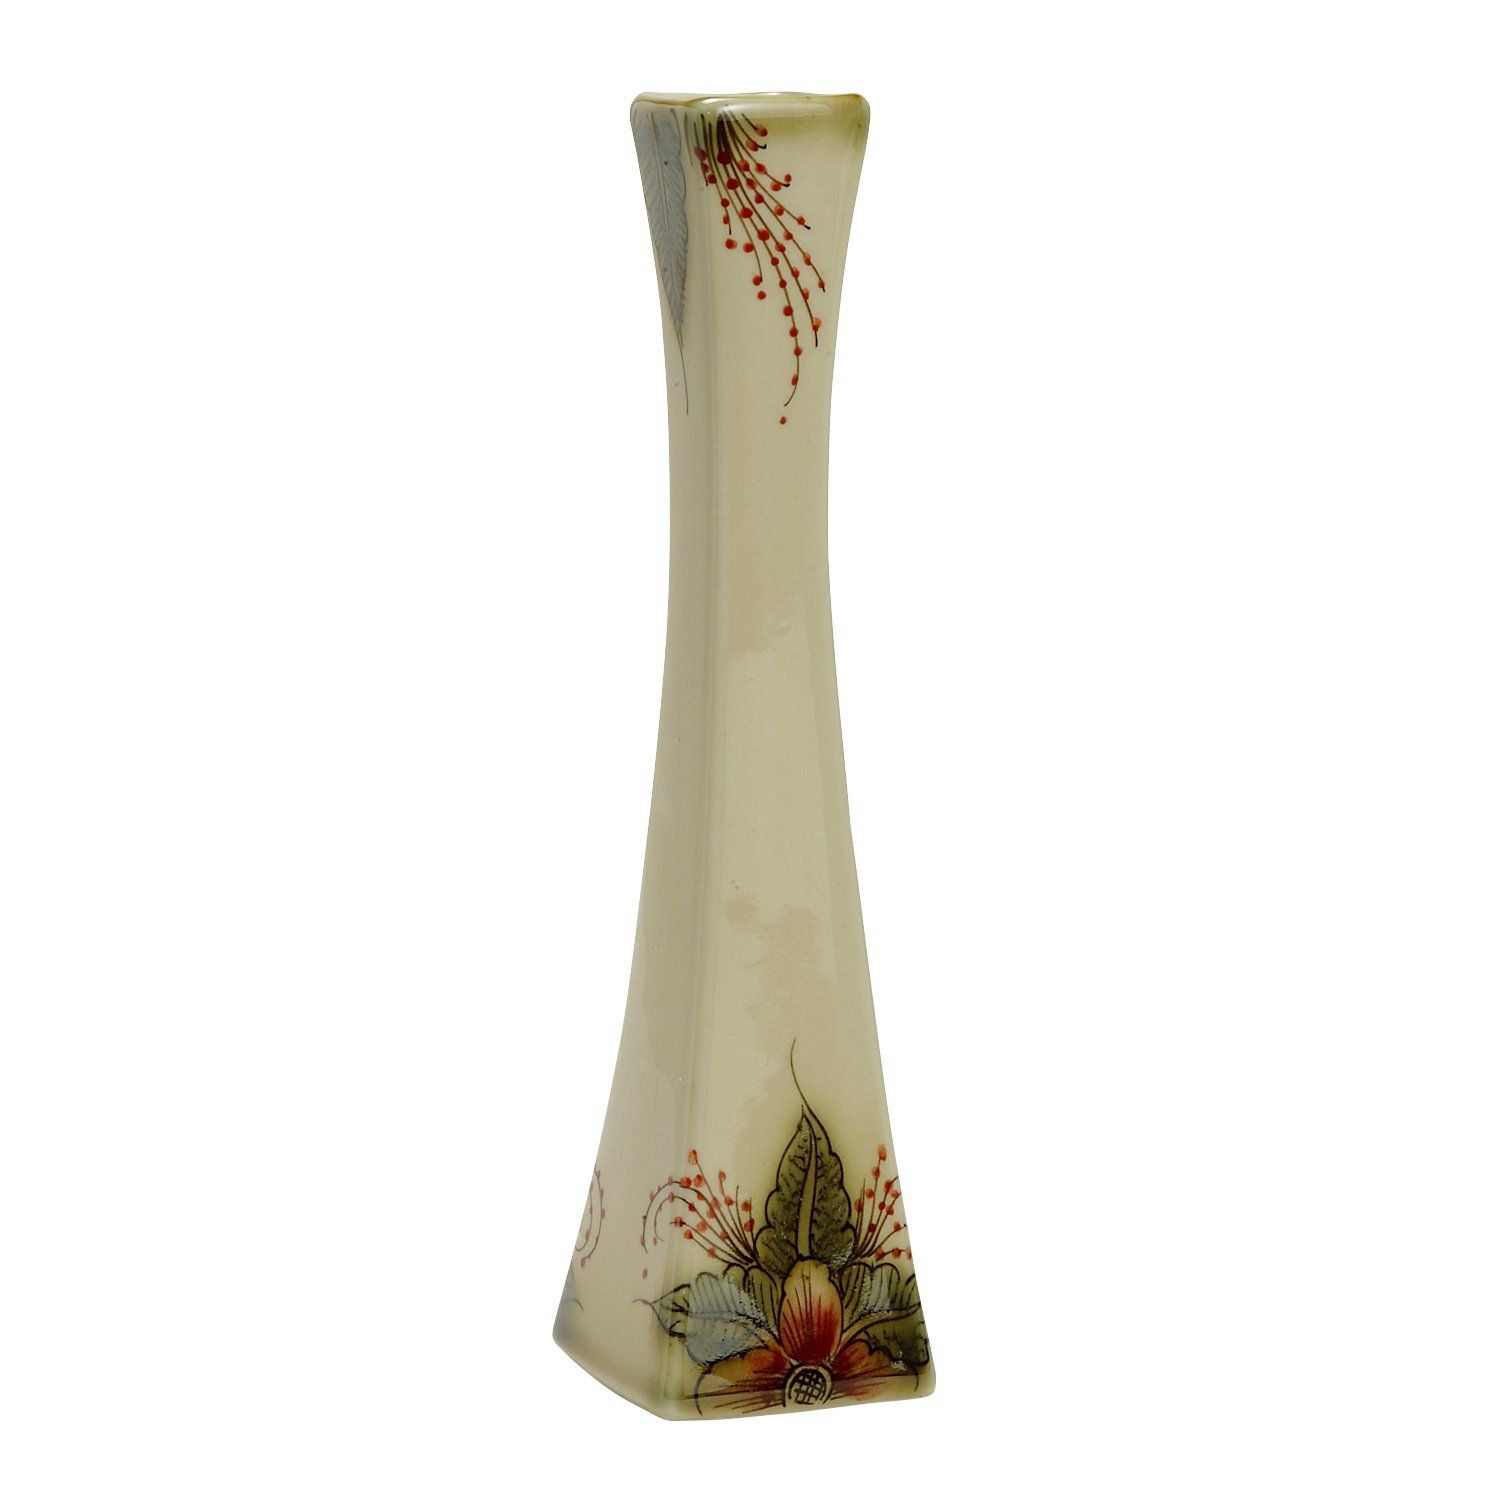 Ten Thousand Villages Handcrafted Ceramic Vase 8'' Tall 'Ancient Stories Flower Vase' by Ten Thousand Villages